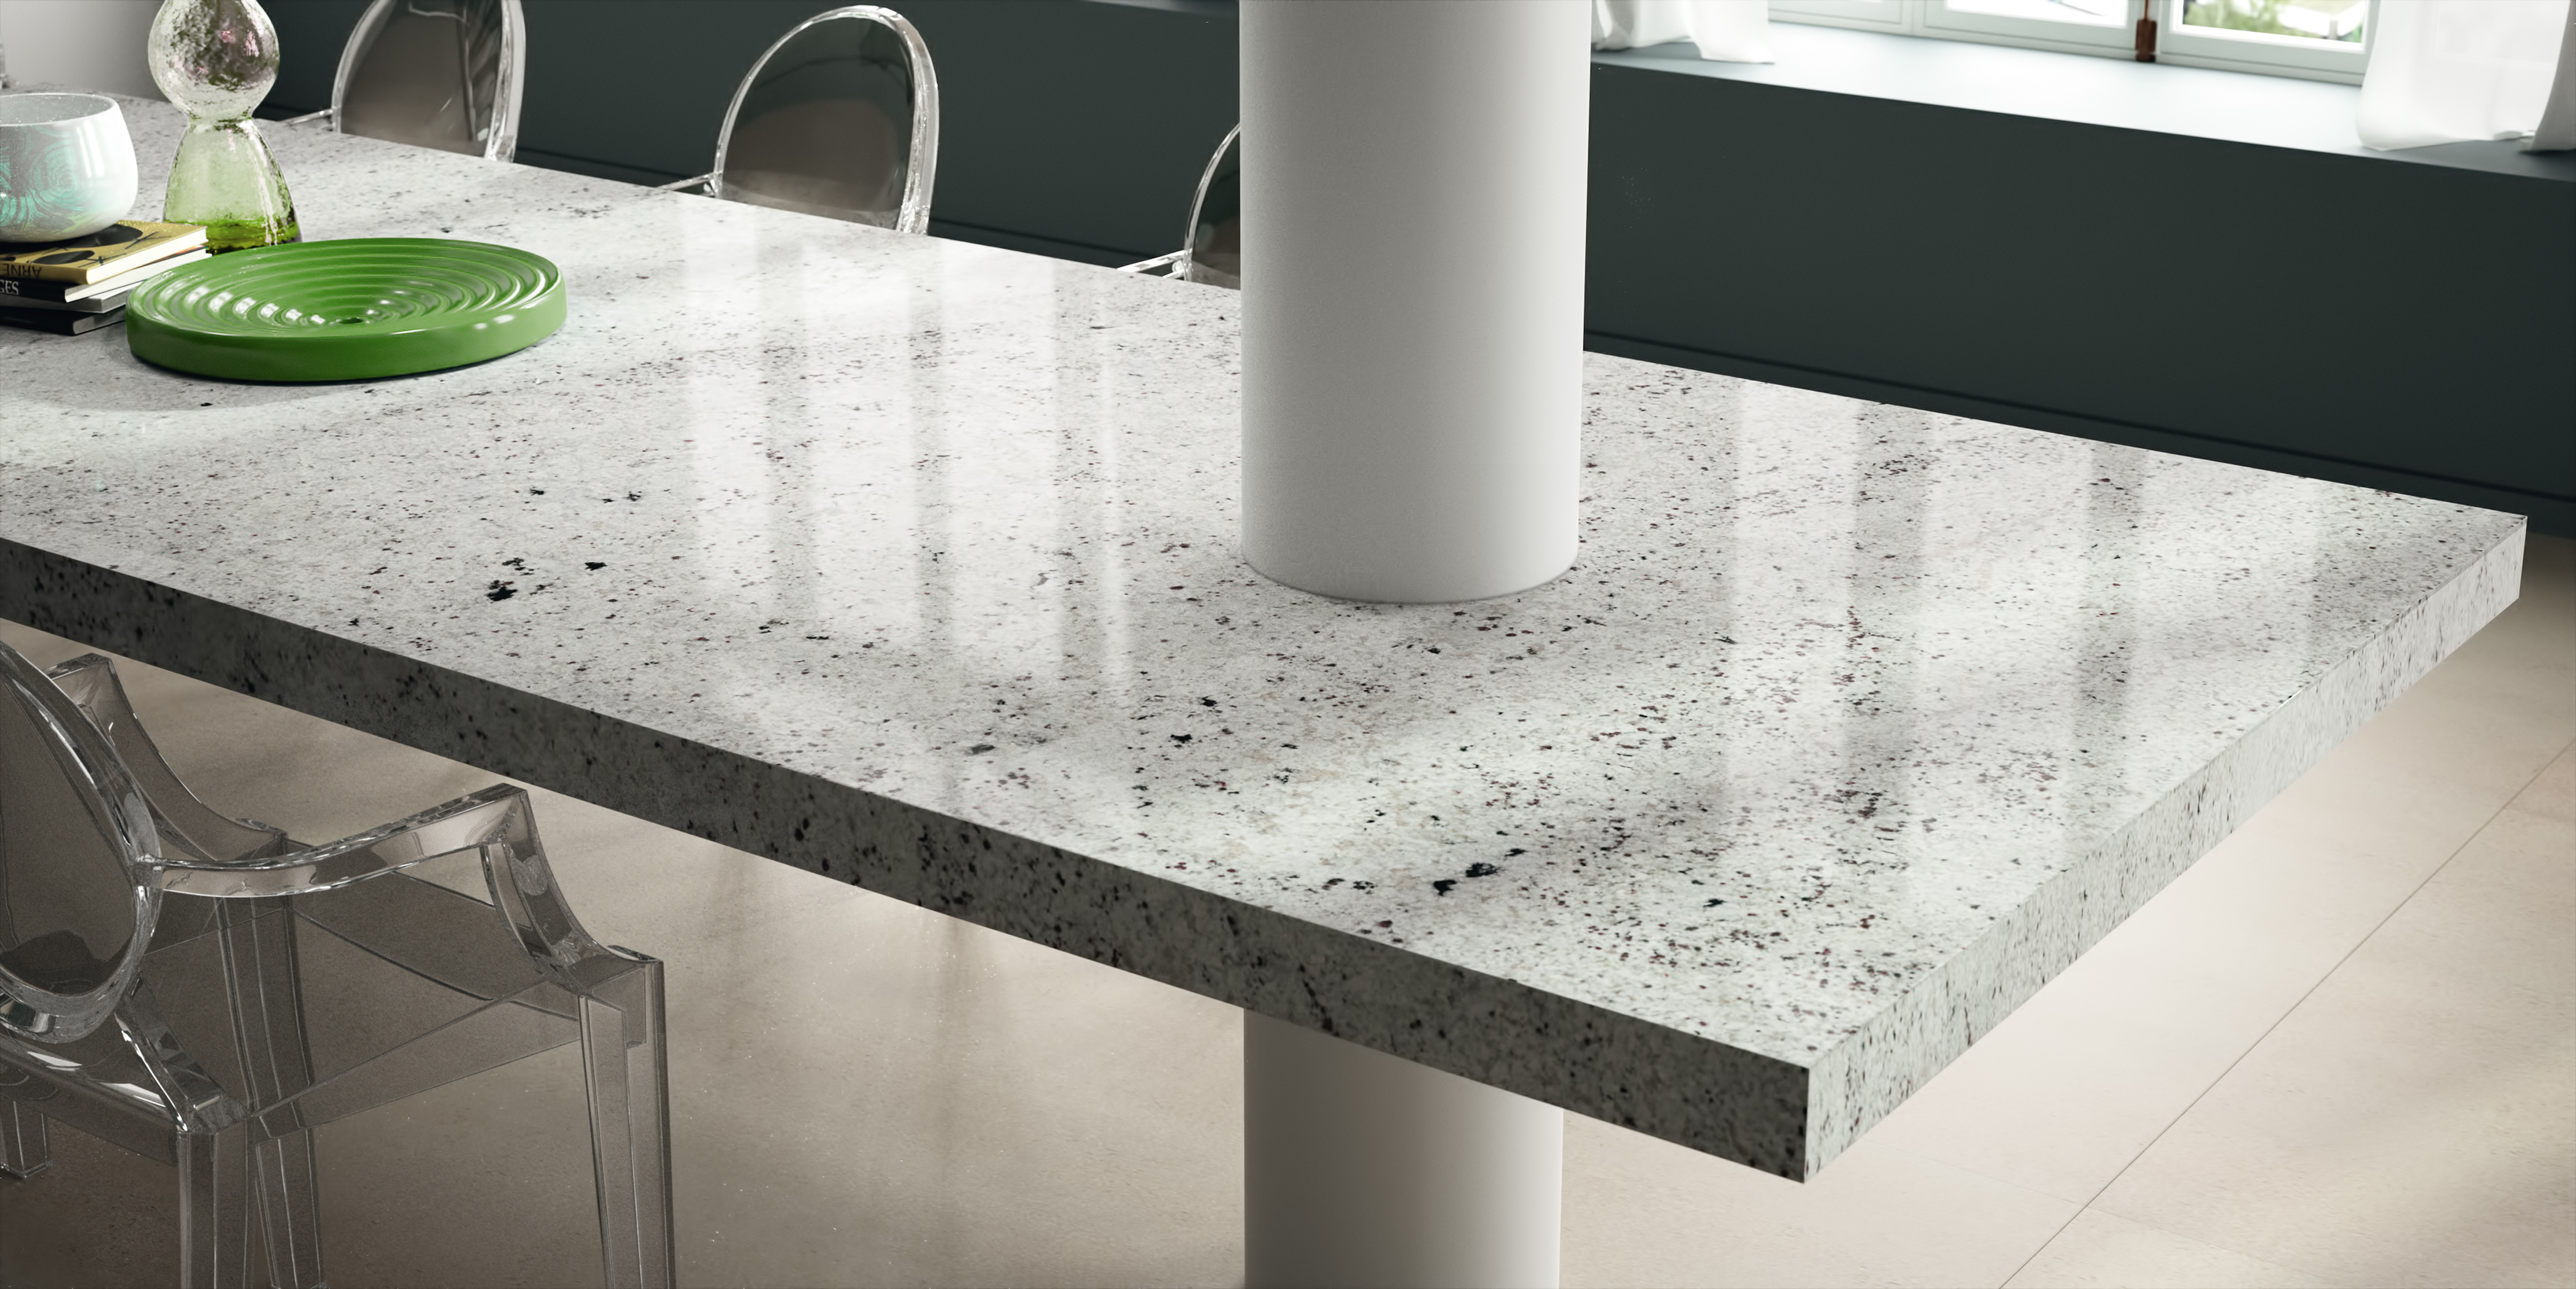 Cosentino Granite Countertops : Cosentino uk introduces eight 'exotic